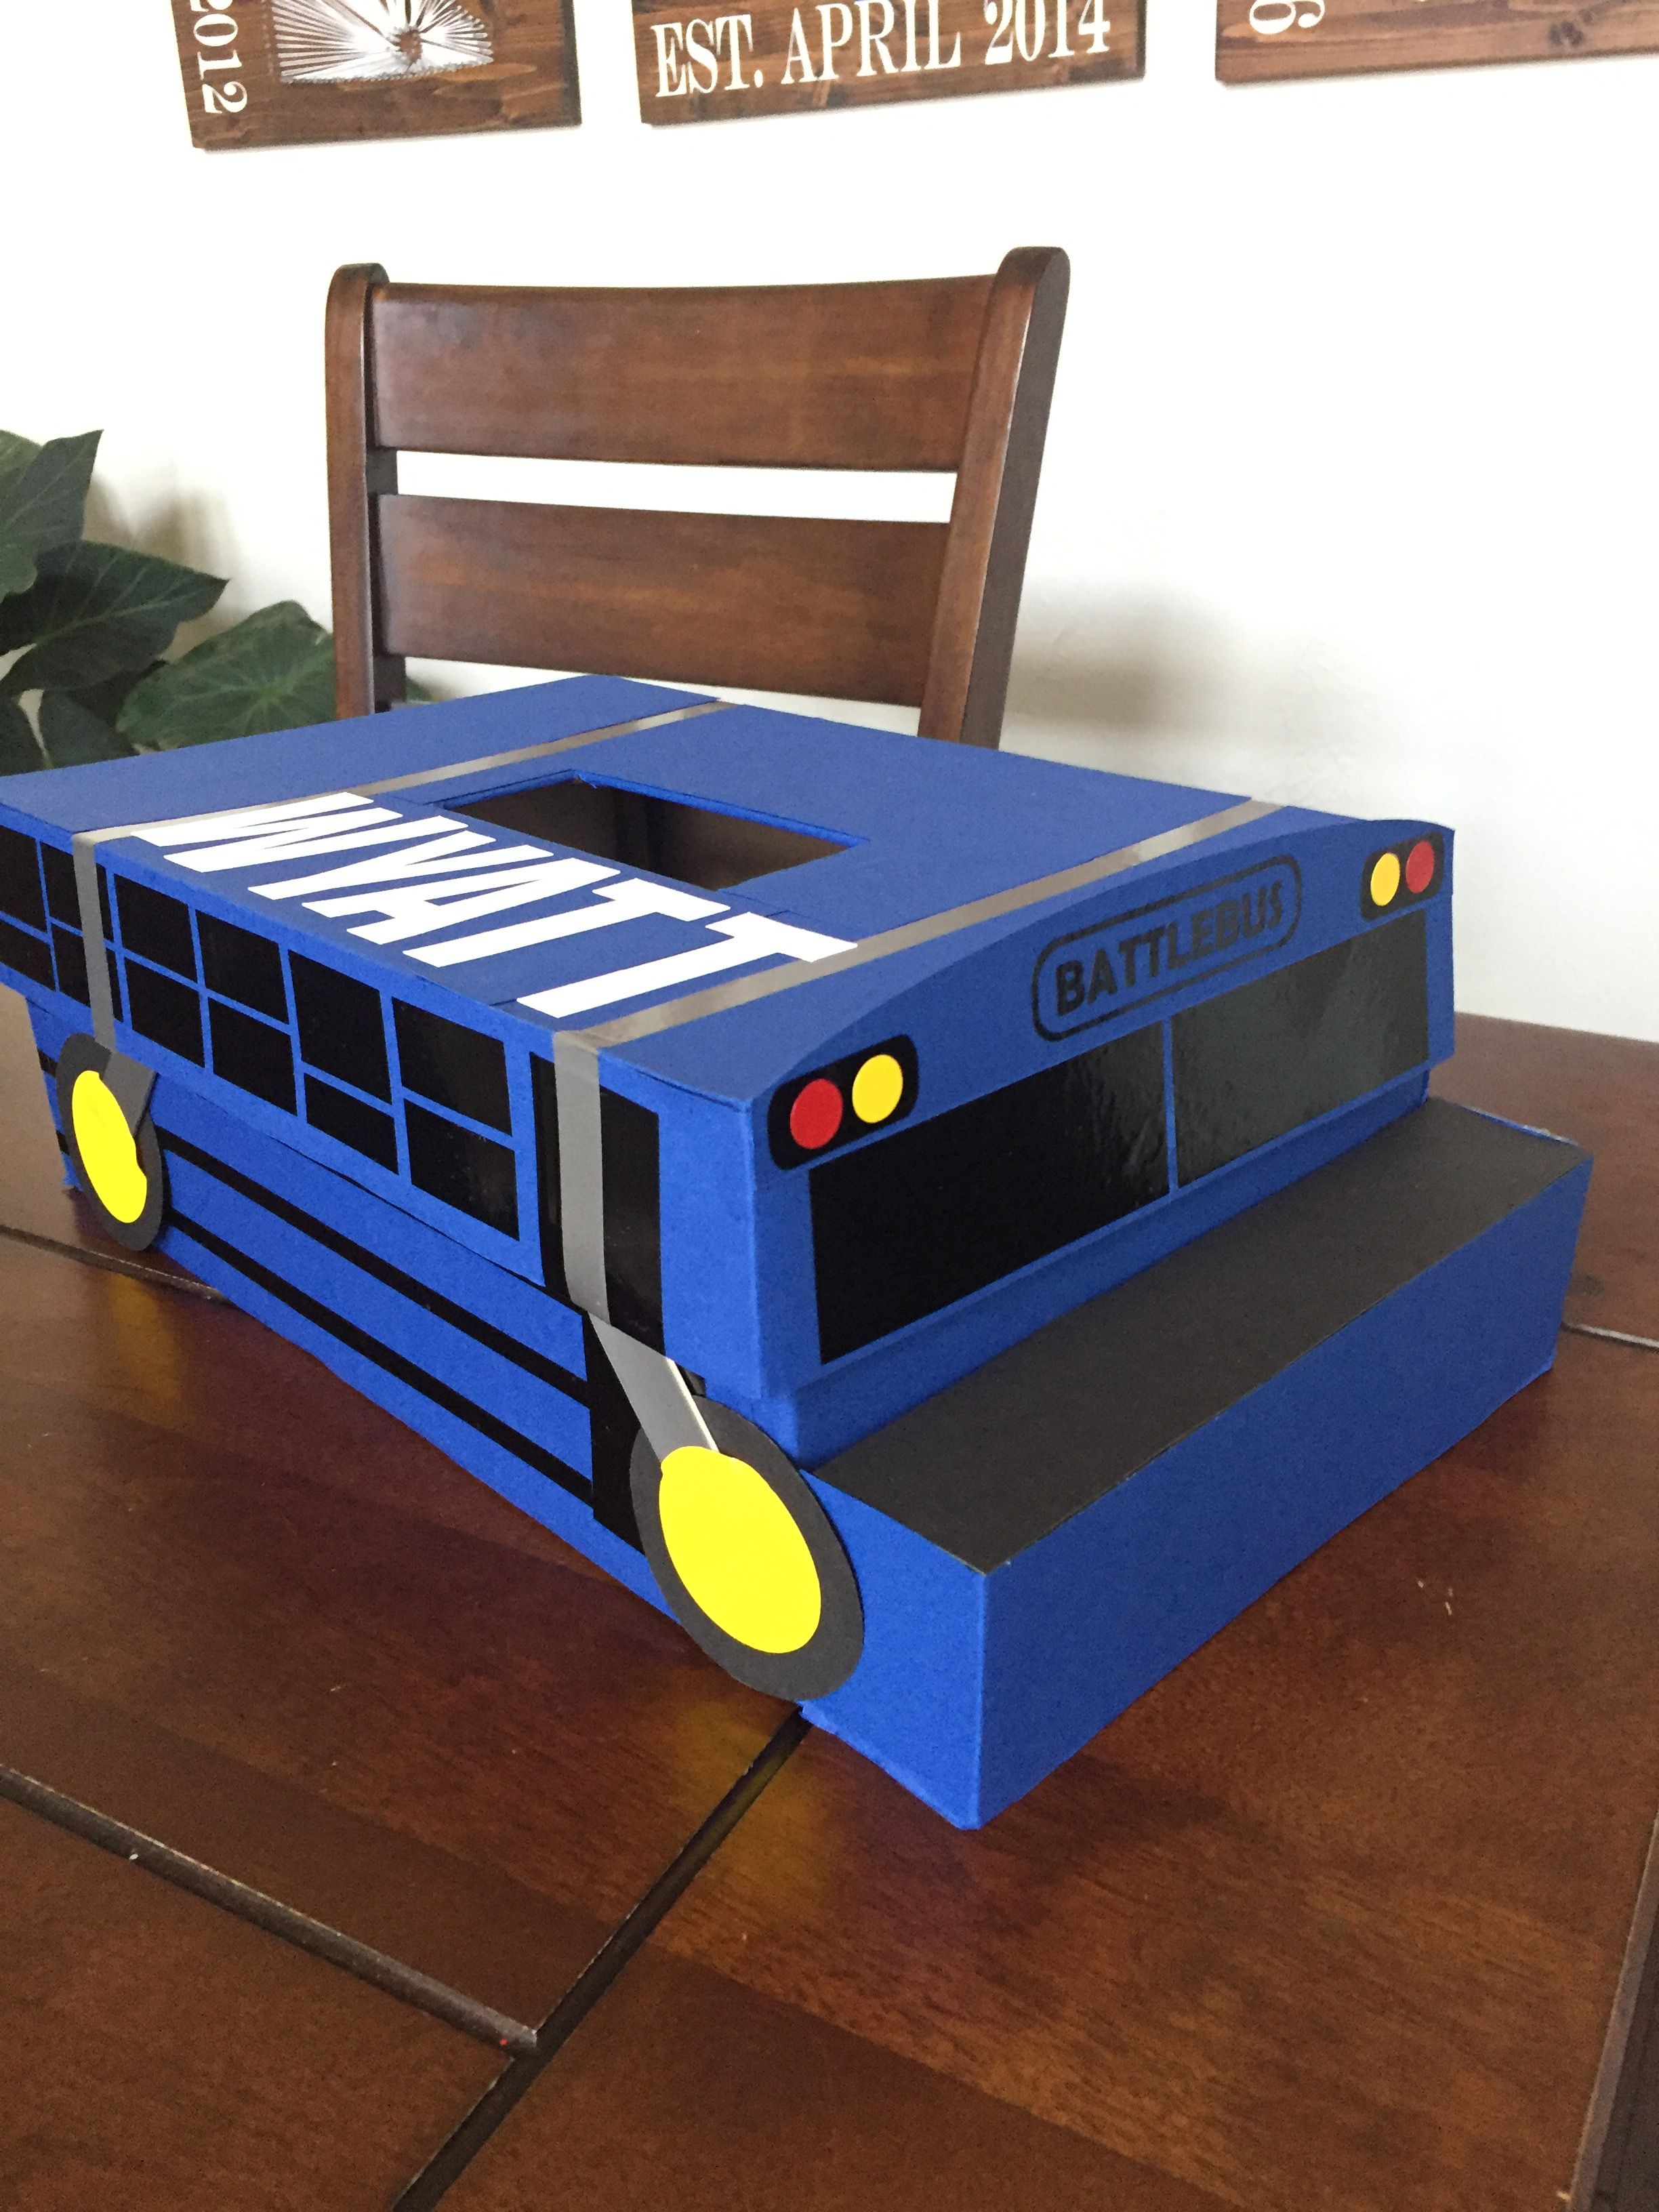 Fortnite battlebus Valentine's Day school box | Kids ...